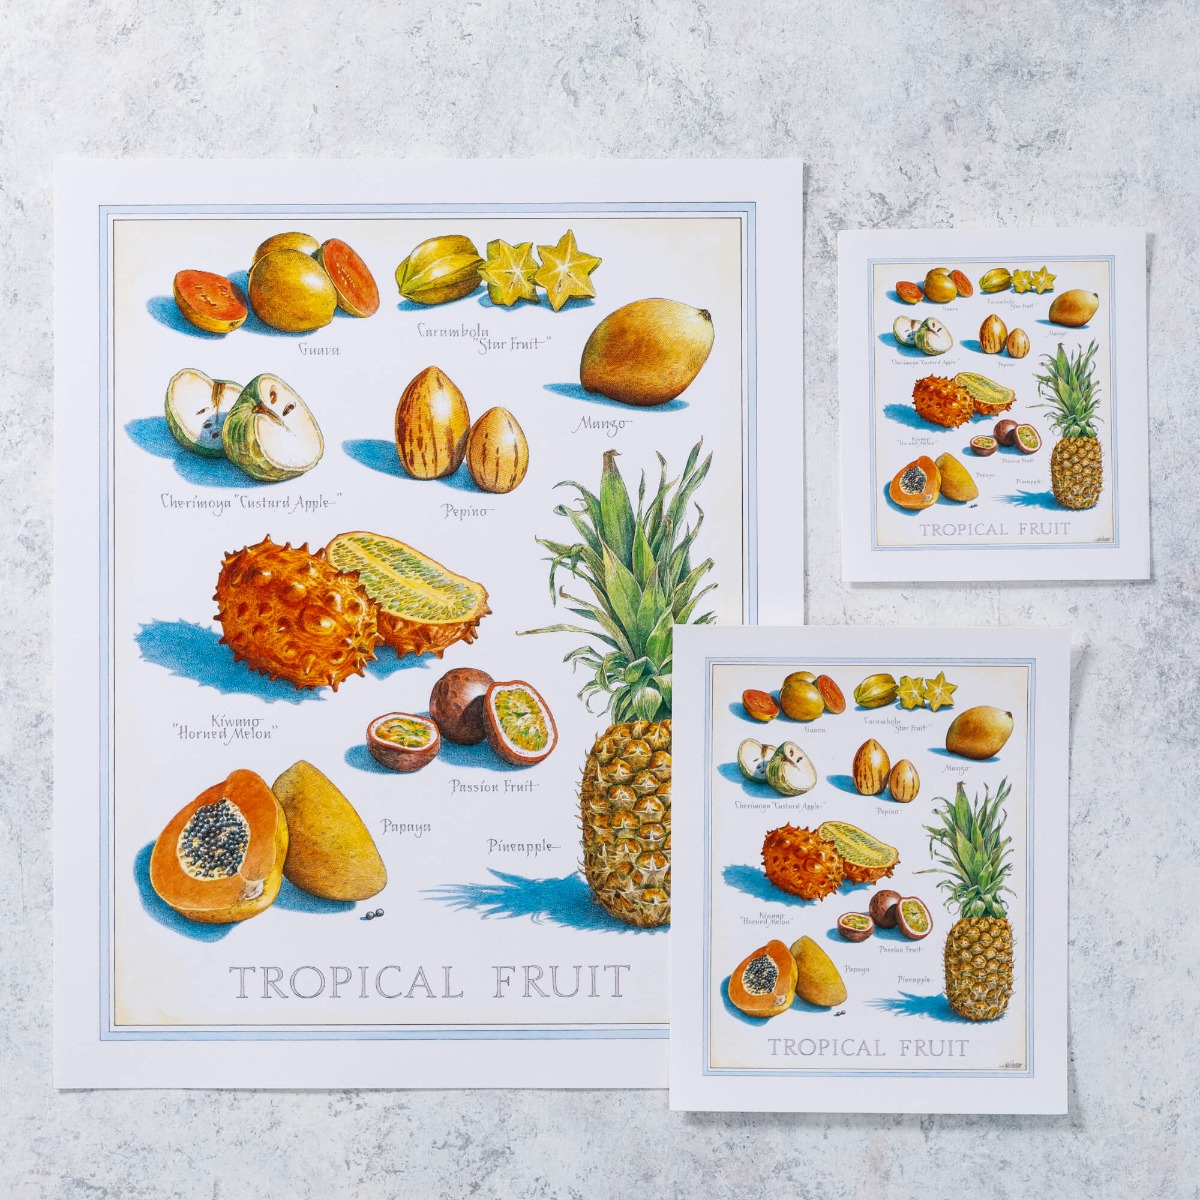 Cook's Illustrated Unframed Print: Tropical Fruit